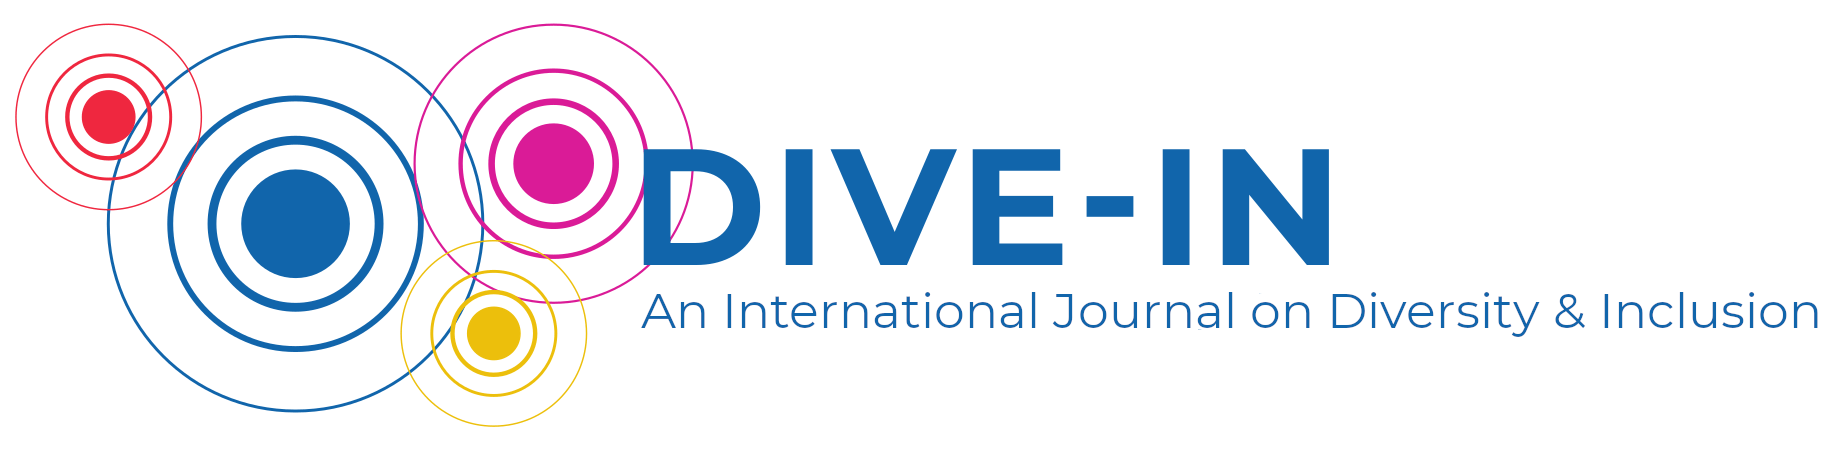 DIVE-IN – An International Journal on Diversity & Inclusion